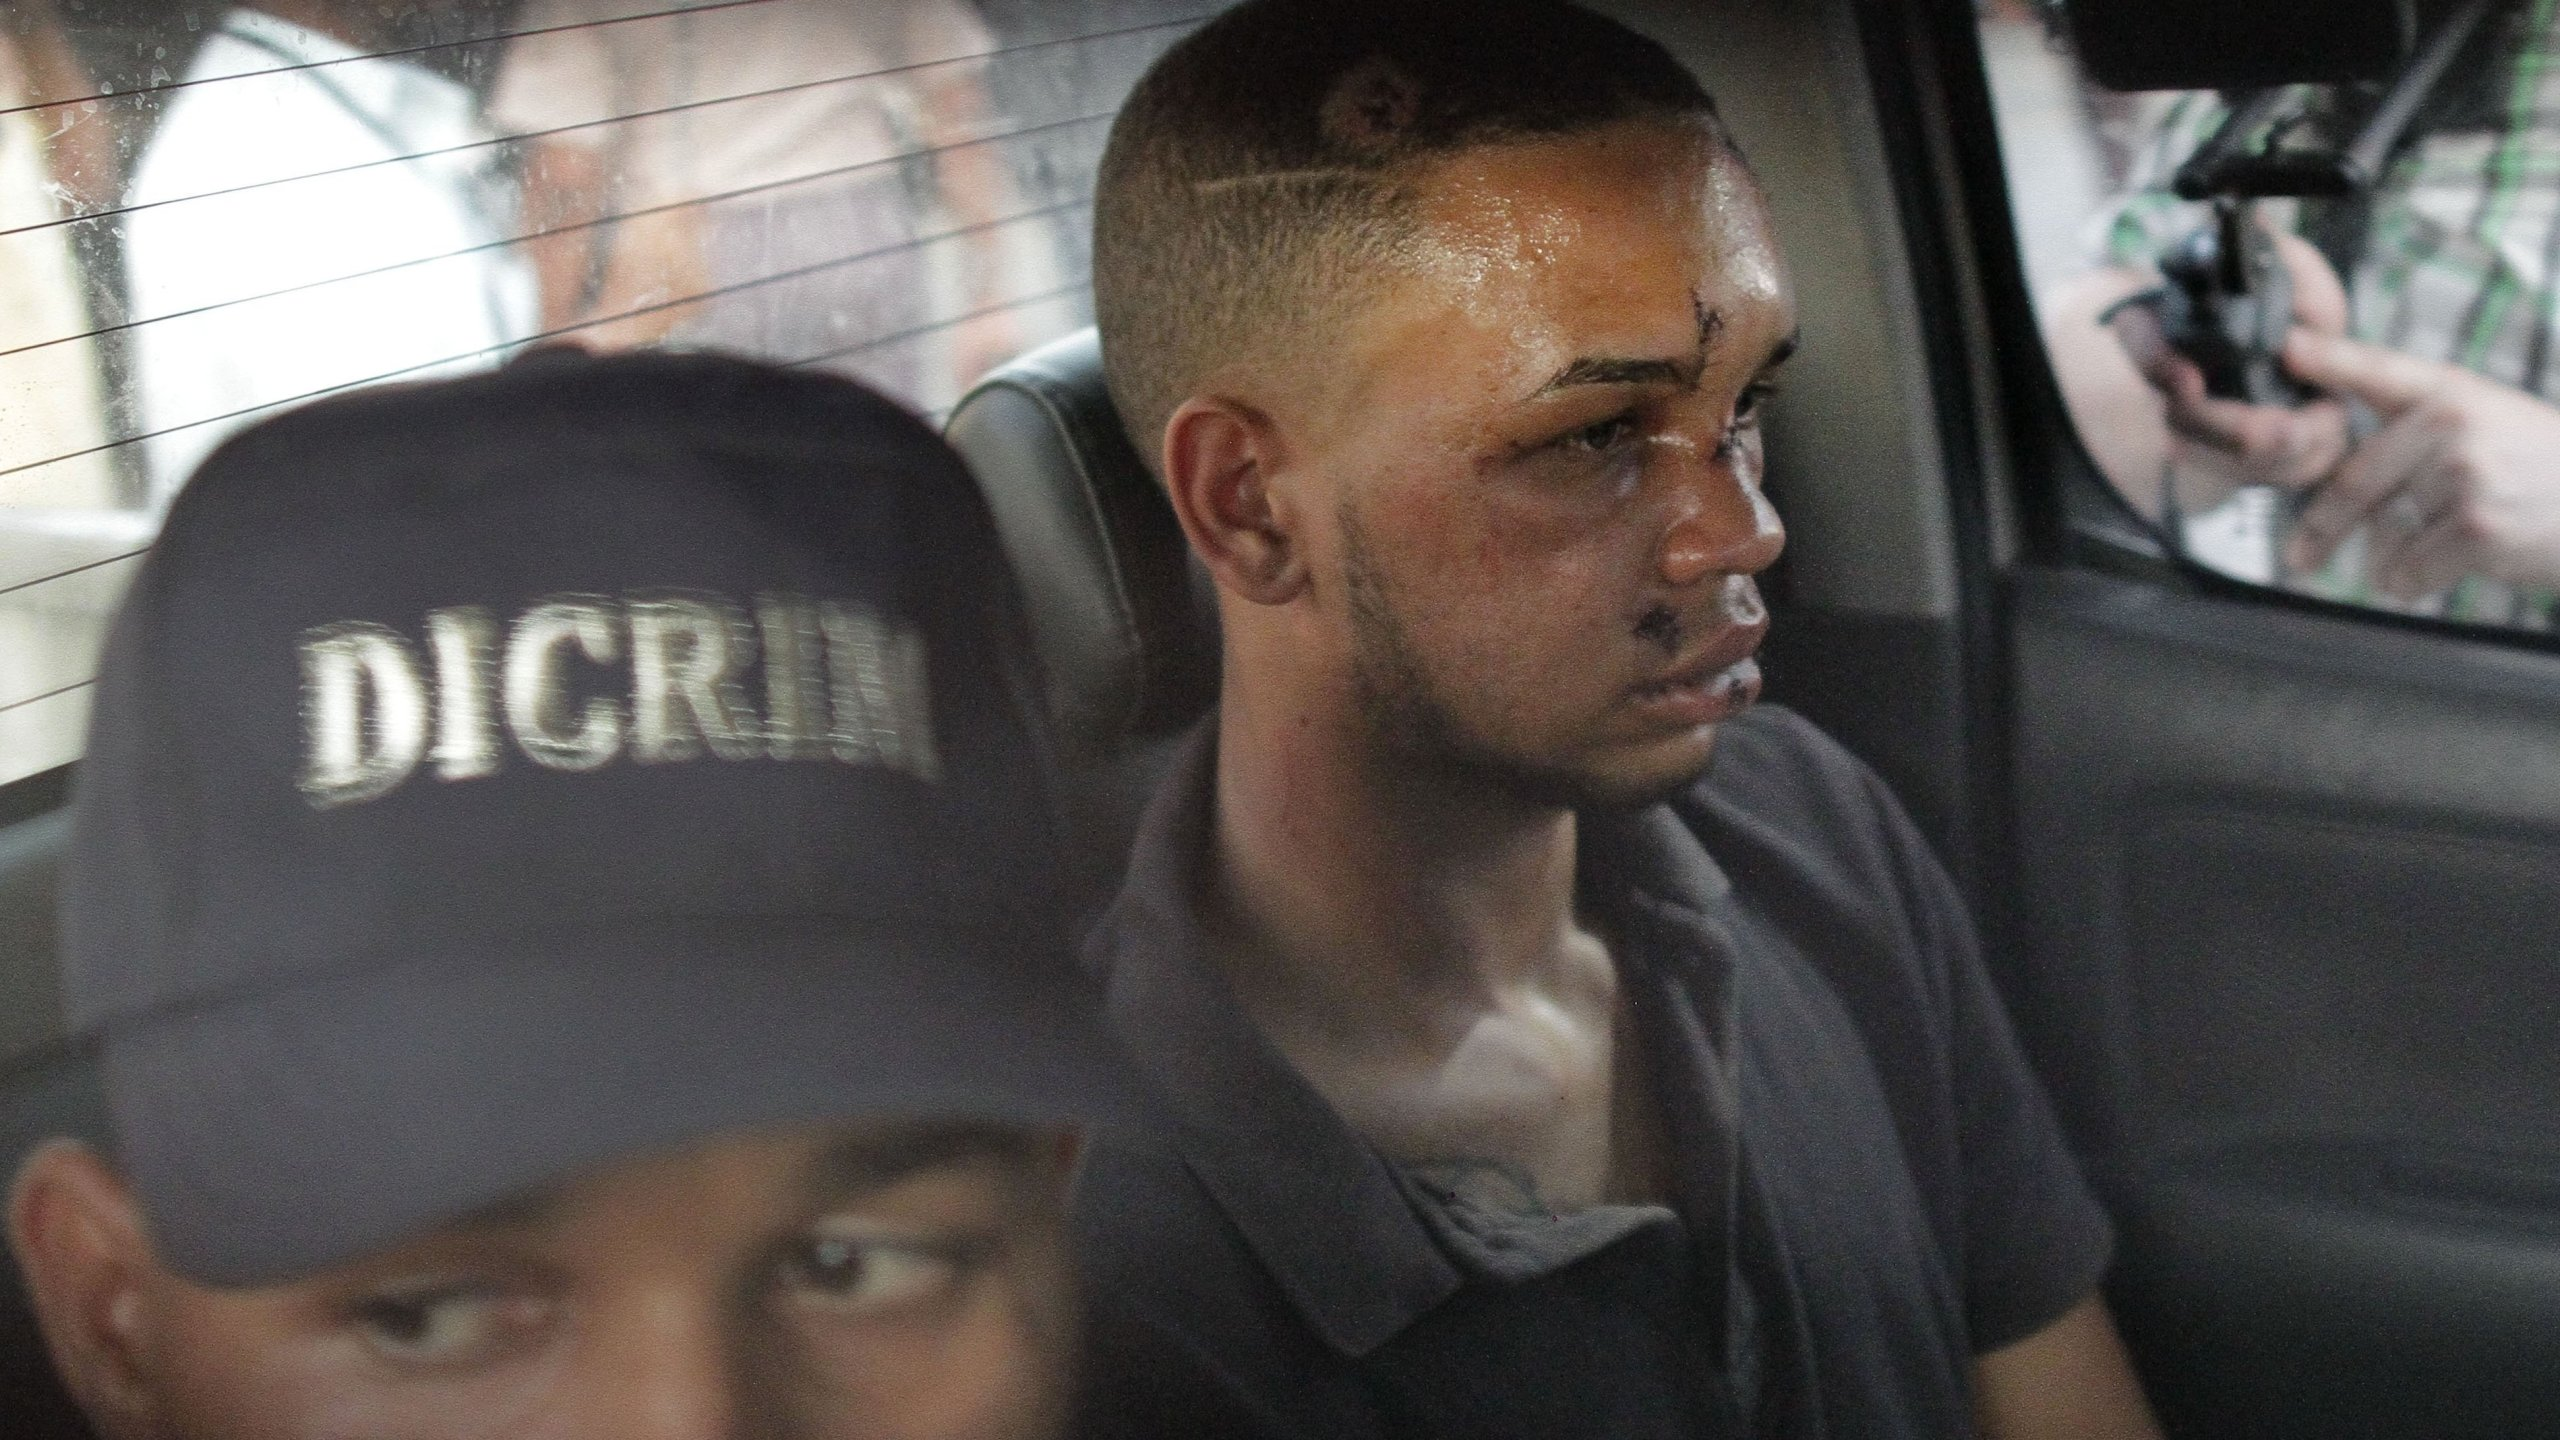 Eddy Vladimir Féliz Garcia, in custody in connection with the shooting of former Boston Red Sox slugger David Ortiz, is transferred by police to court. (Credit: Roberto Guzman/AP)